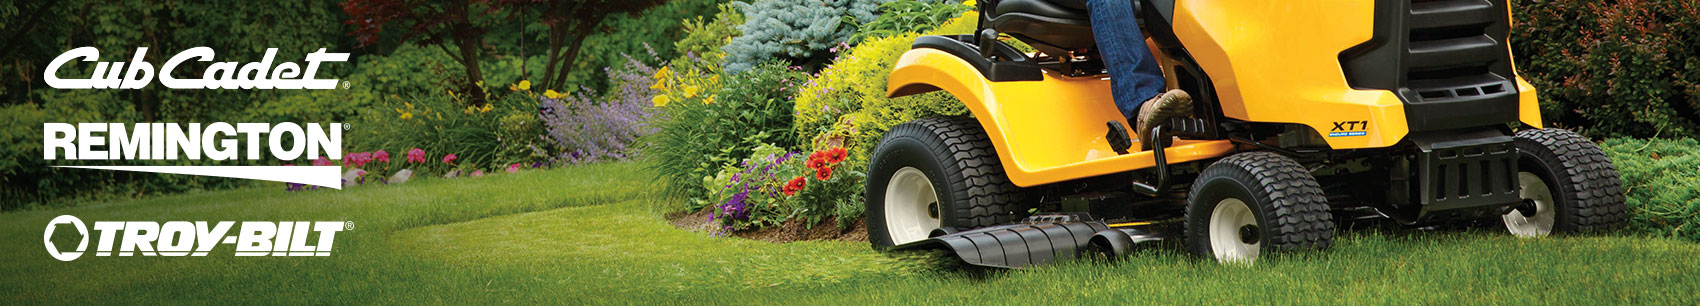 Mtd Lawn Care Mowers Trimmers Edgers Tillers Amp More